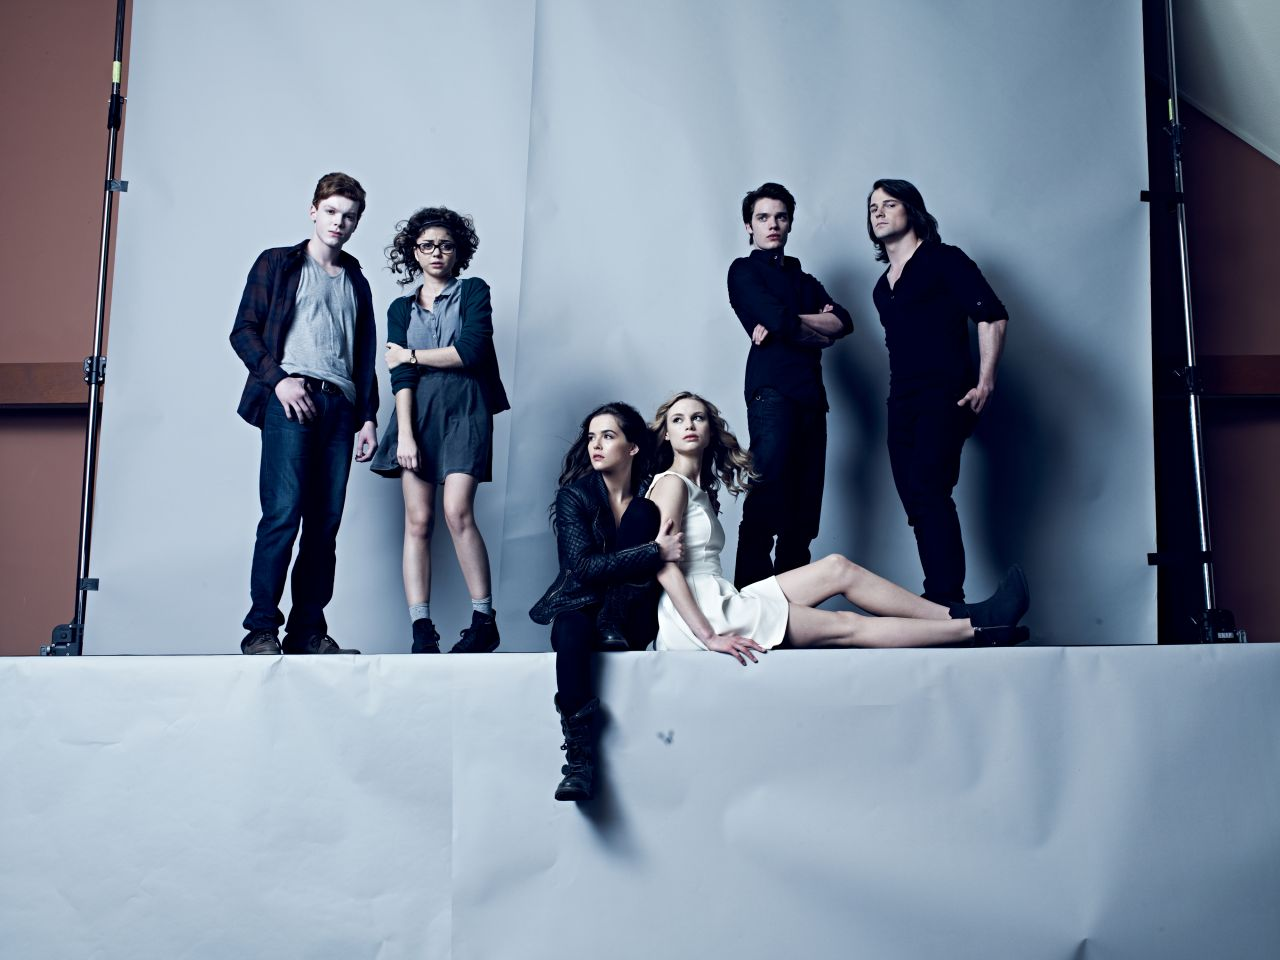 New VAMPIRE ACADEMY Promo Photos (+10)